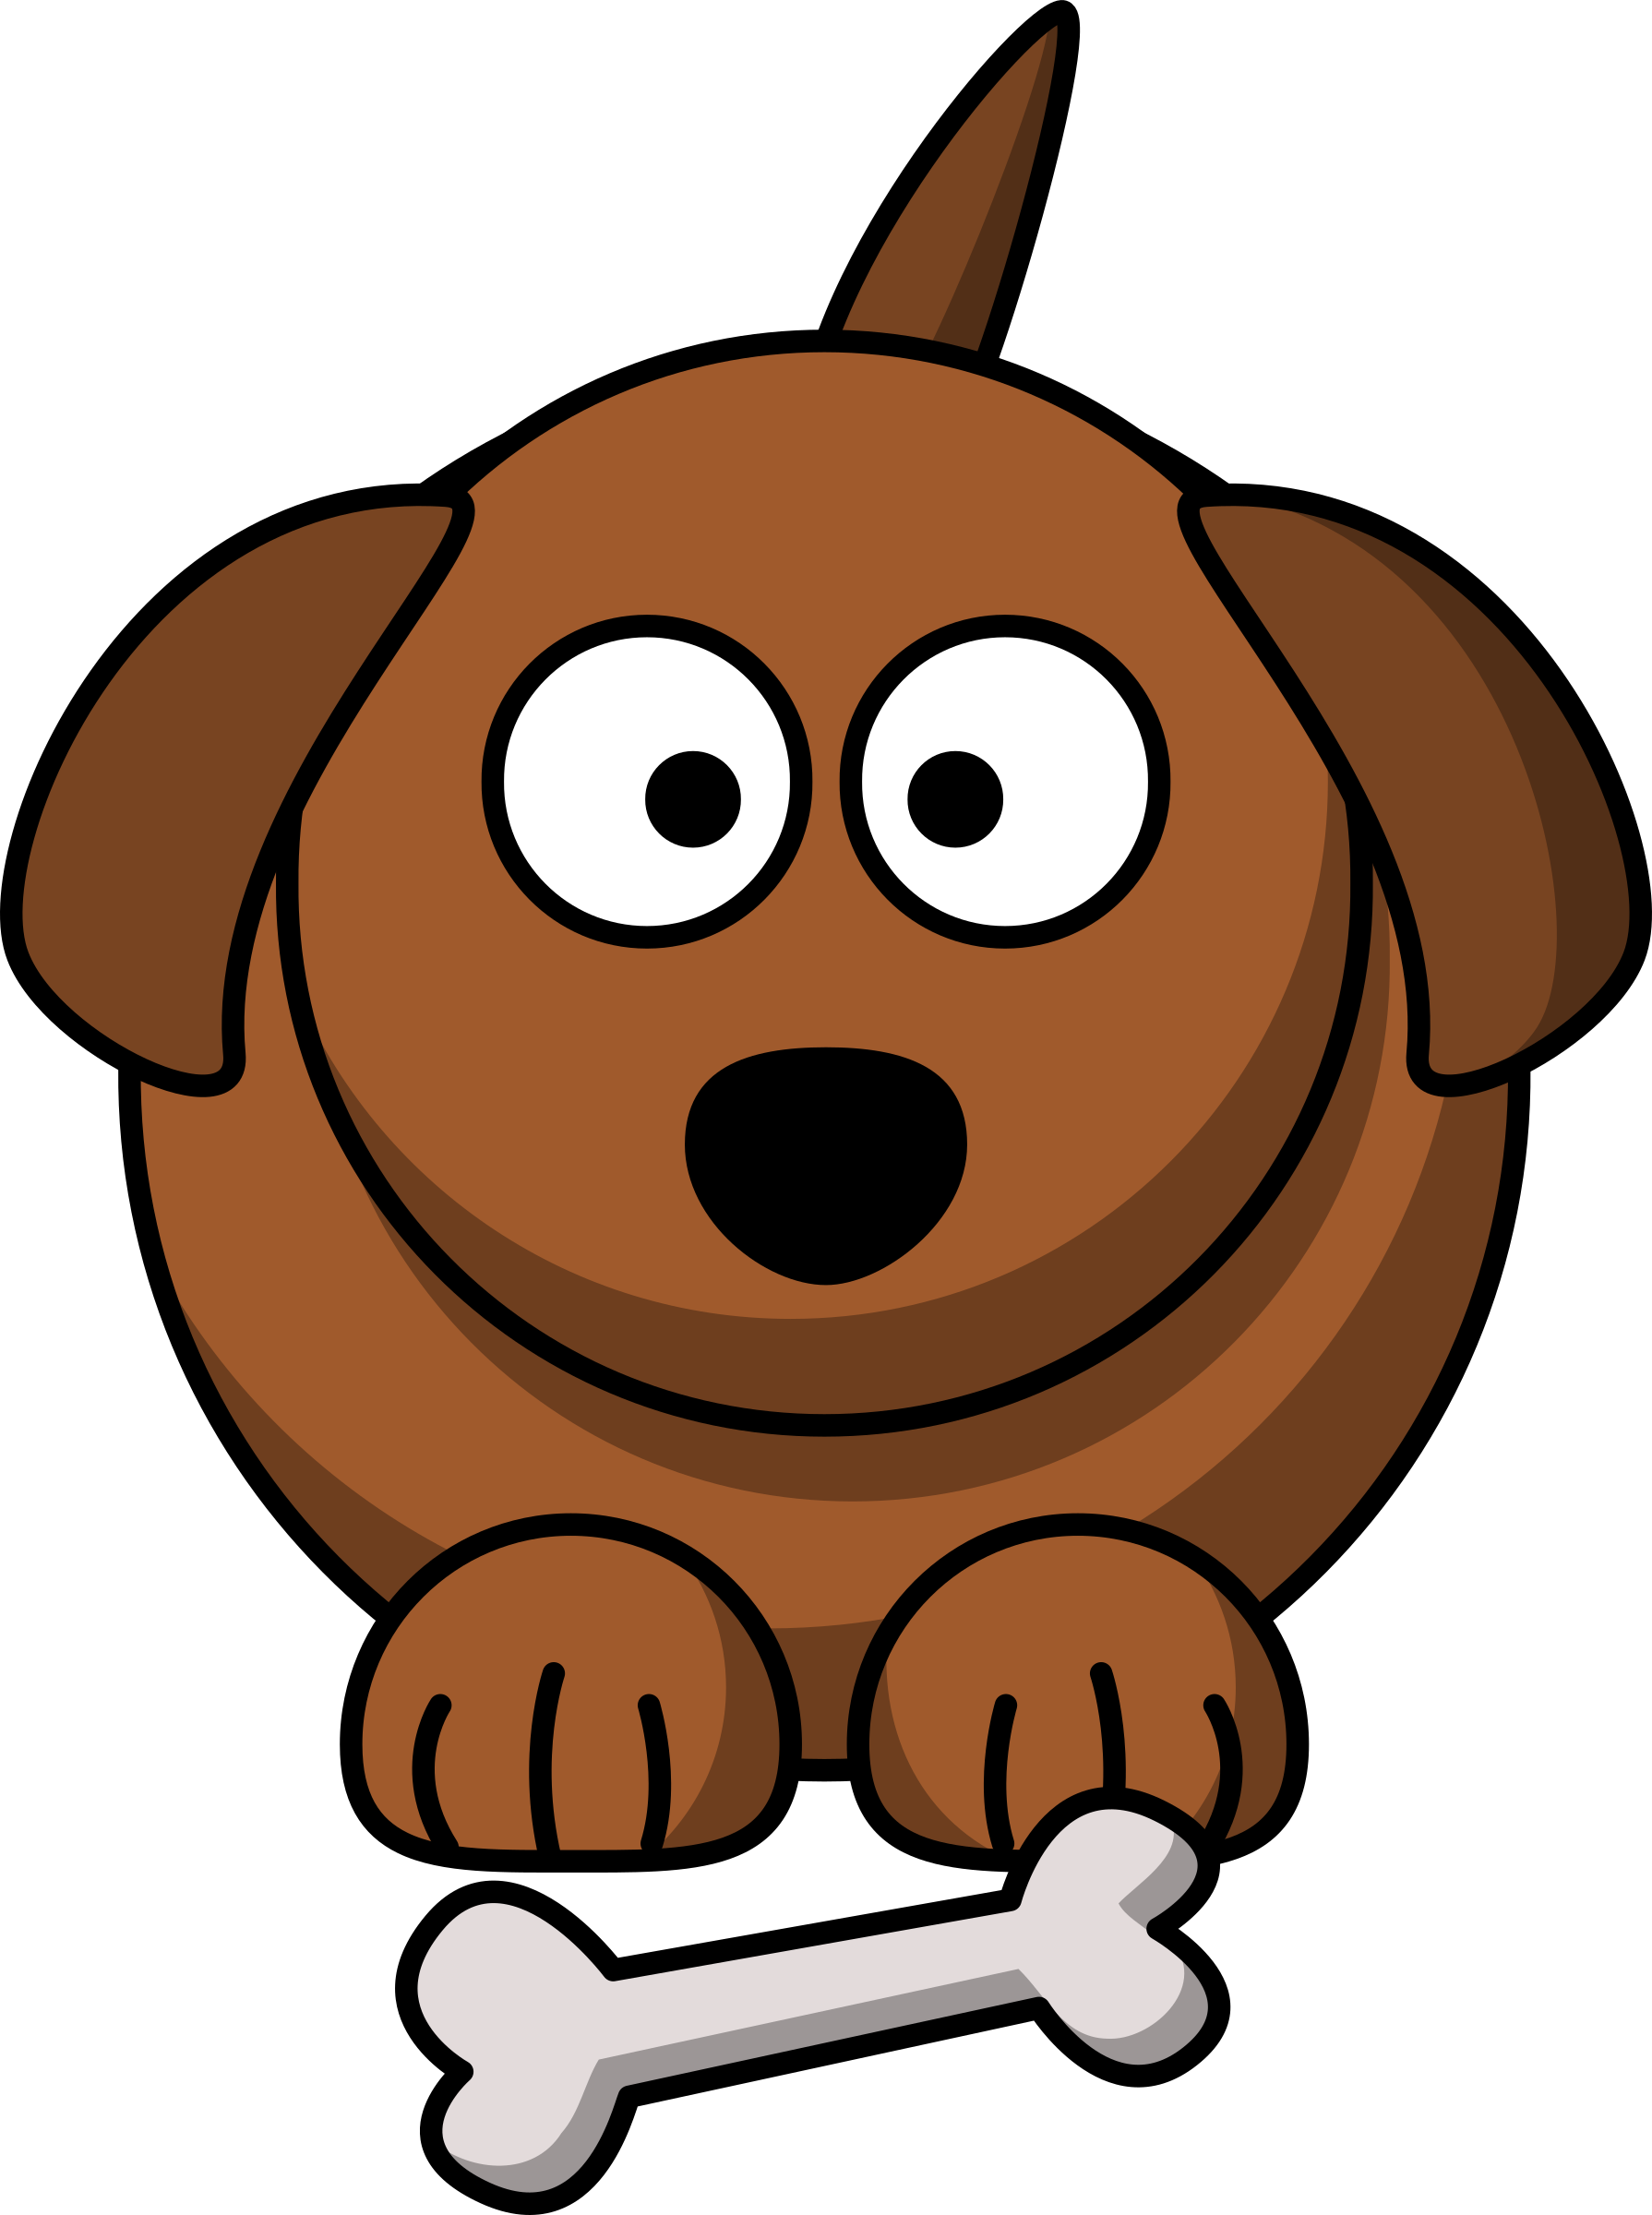 Dogs clipart cartoon. Dog big image png